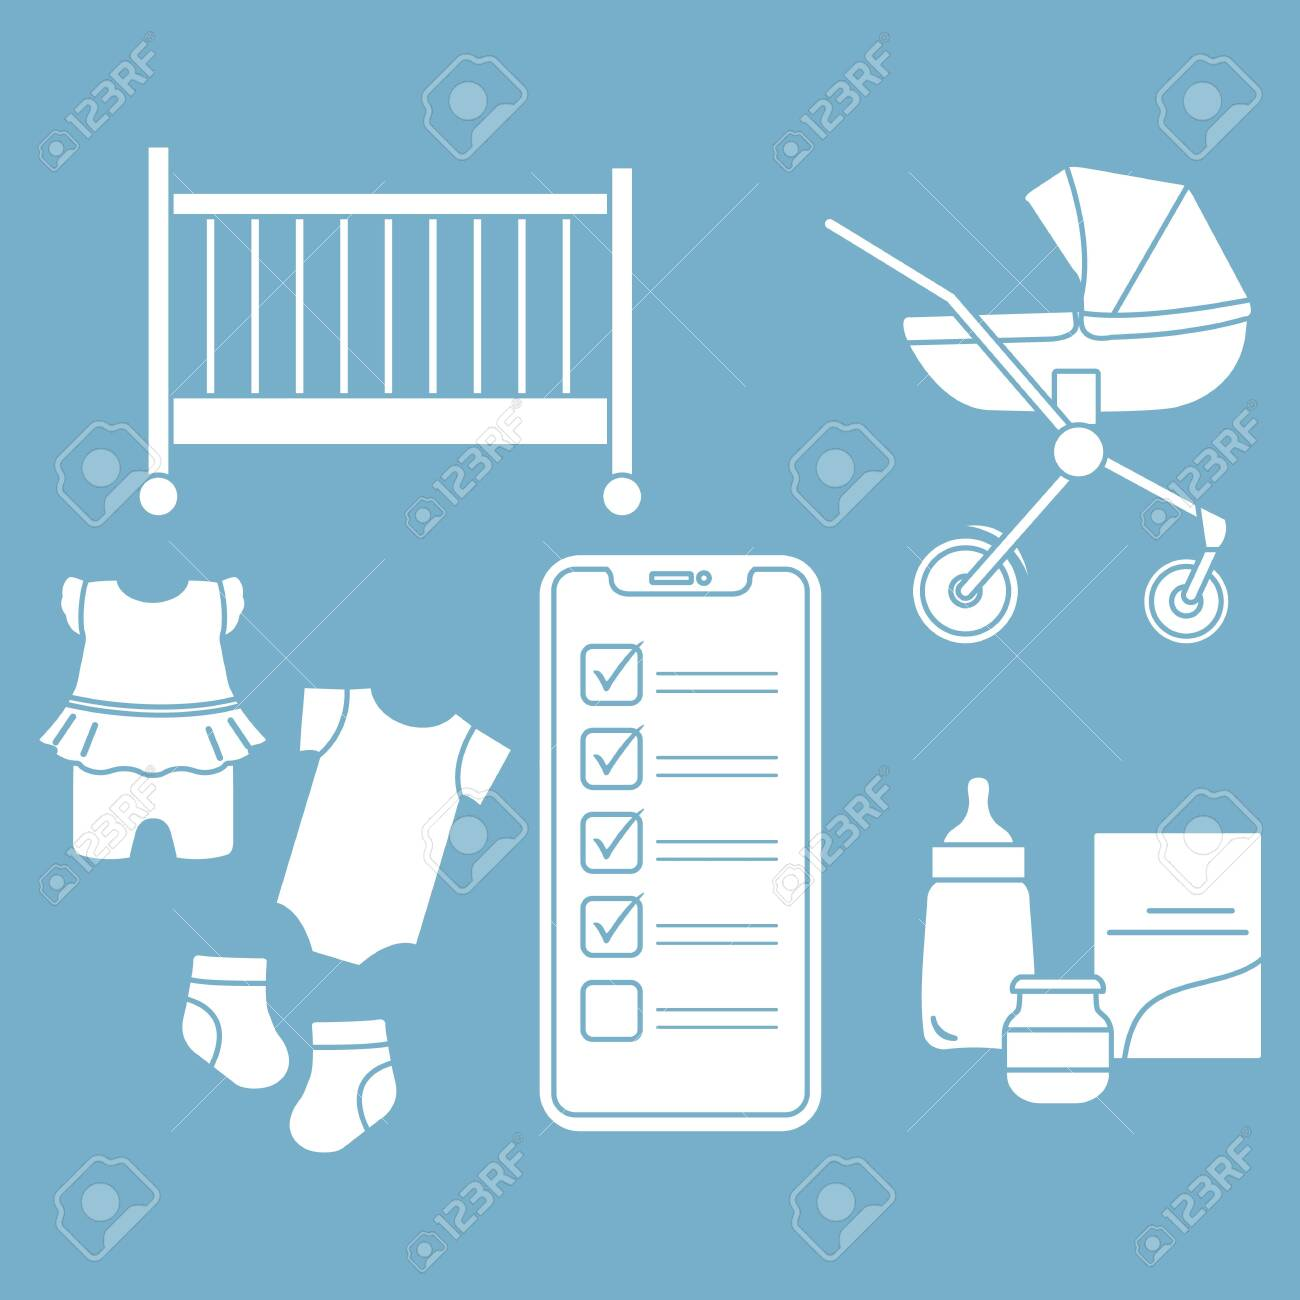 Newborn Babies Online Shopping Vector Illustration With Smartphone With Checklist Newborn Baby